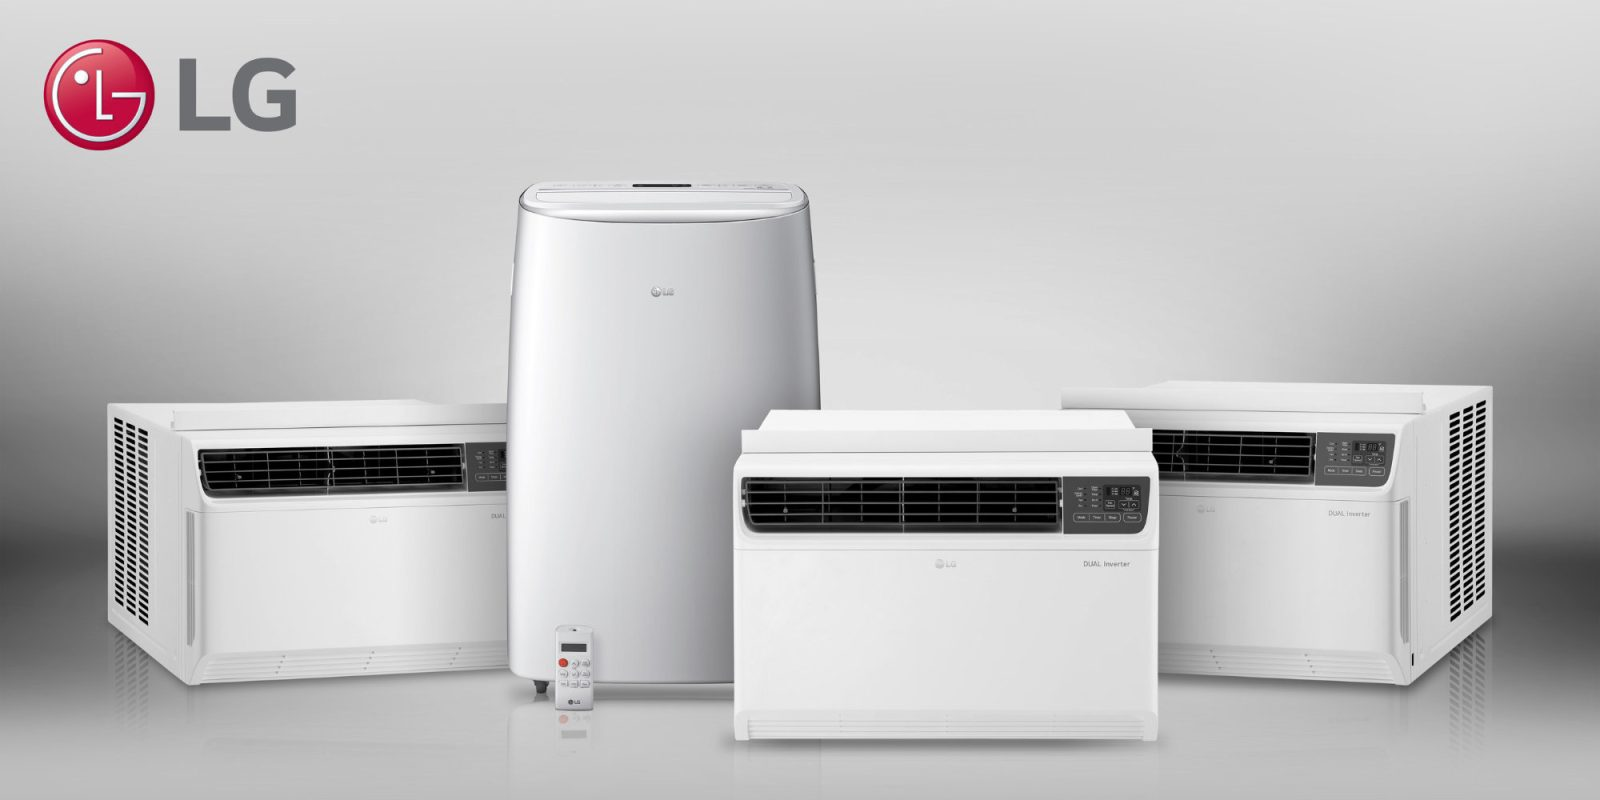 Lg S Smart Air Conditioner Is Portable And Energy